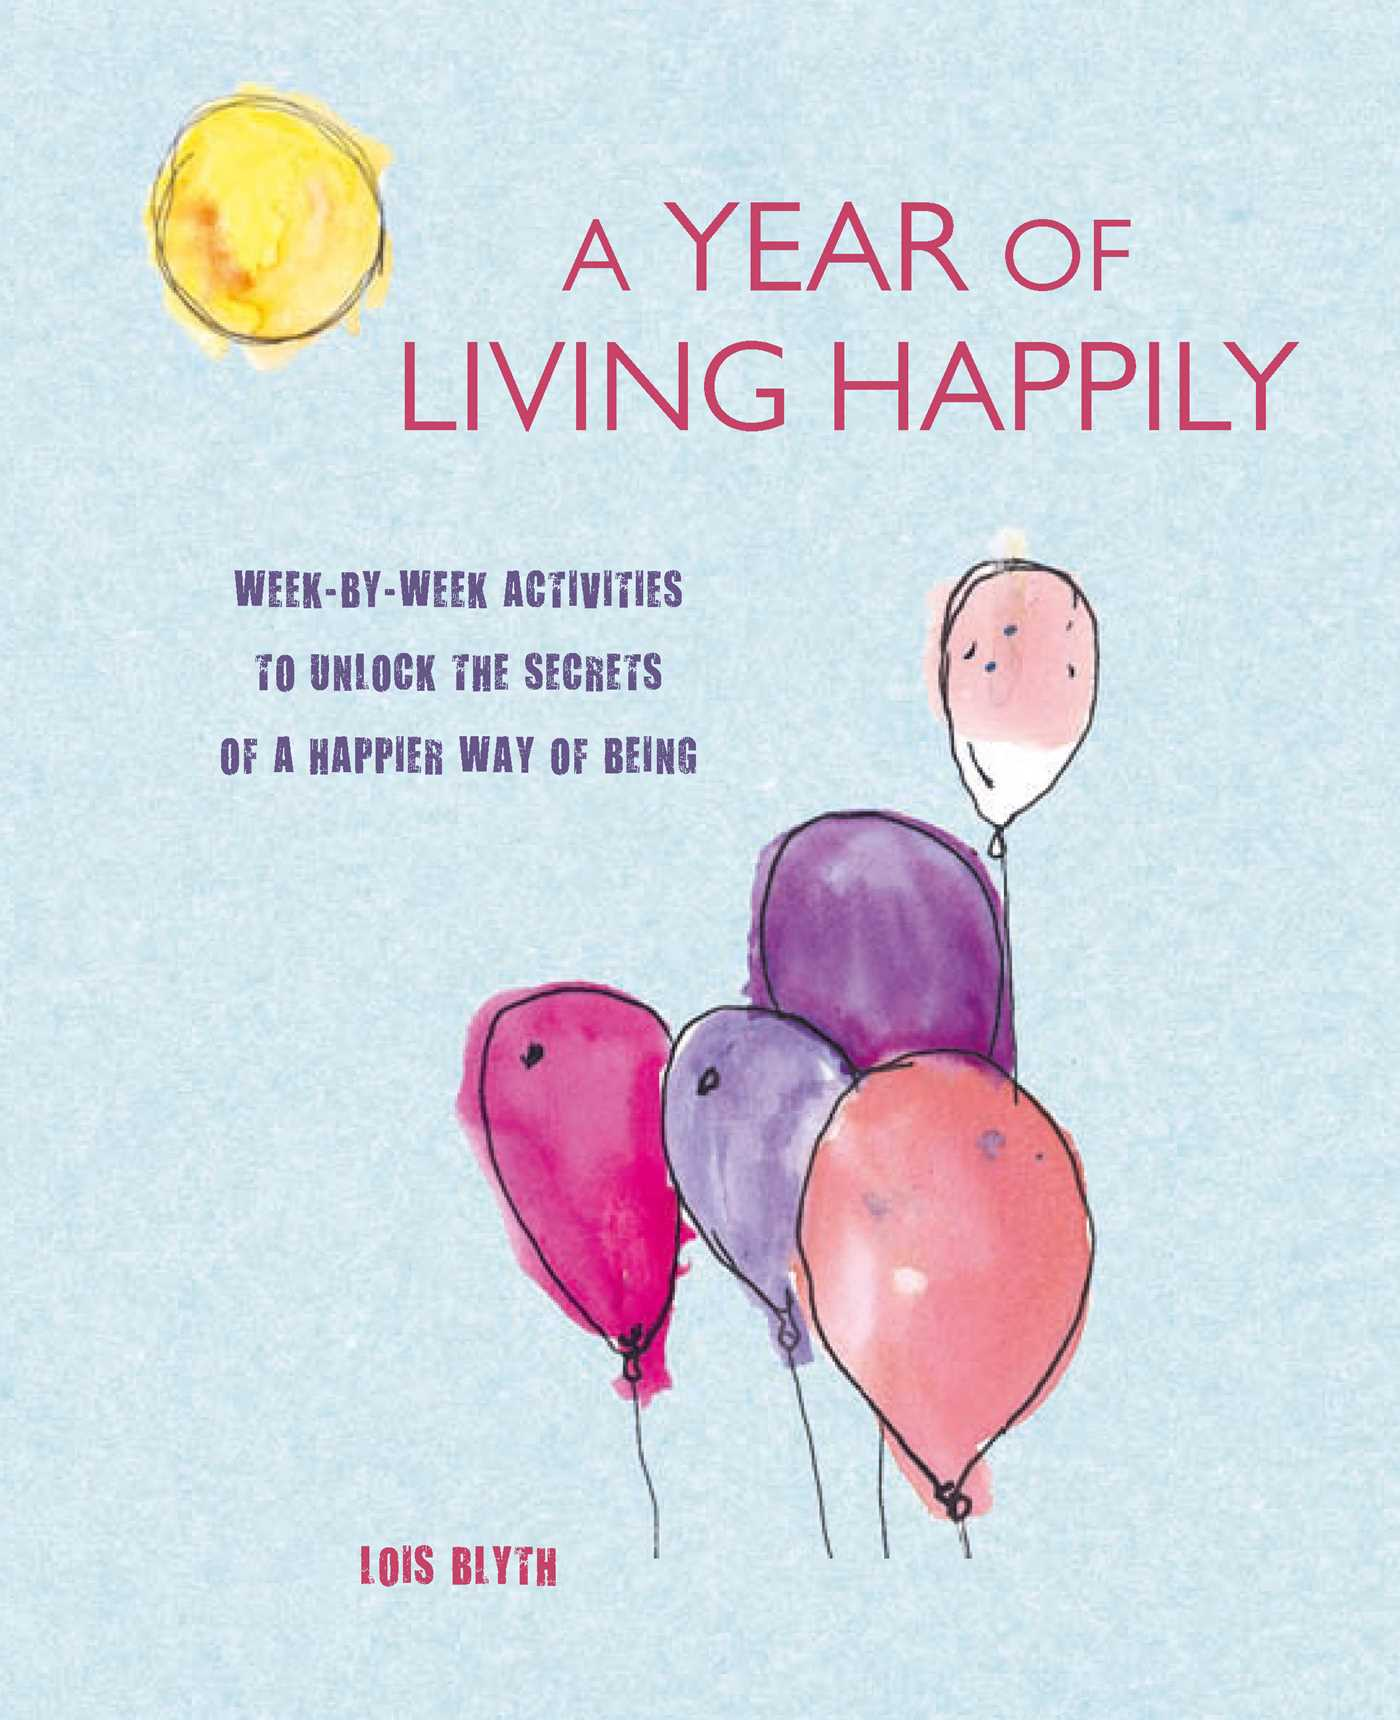 A year of living happily 9781782494775 hr